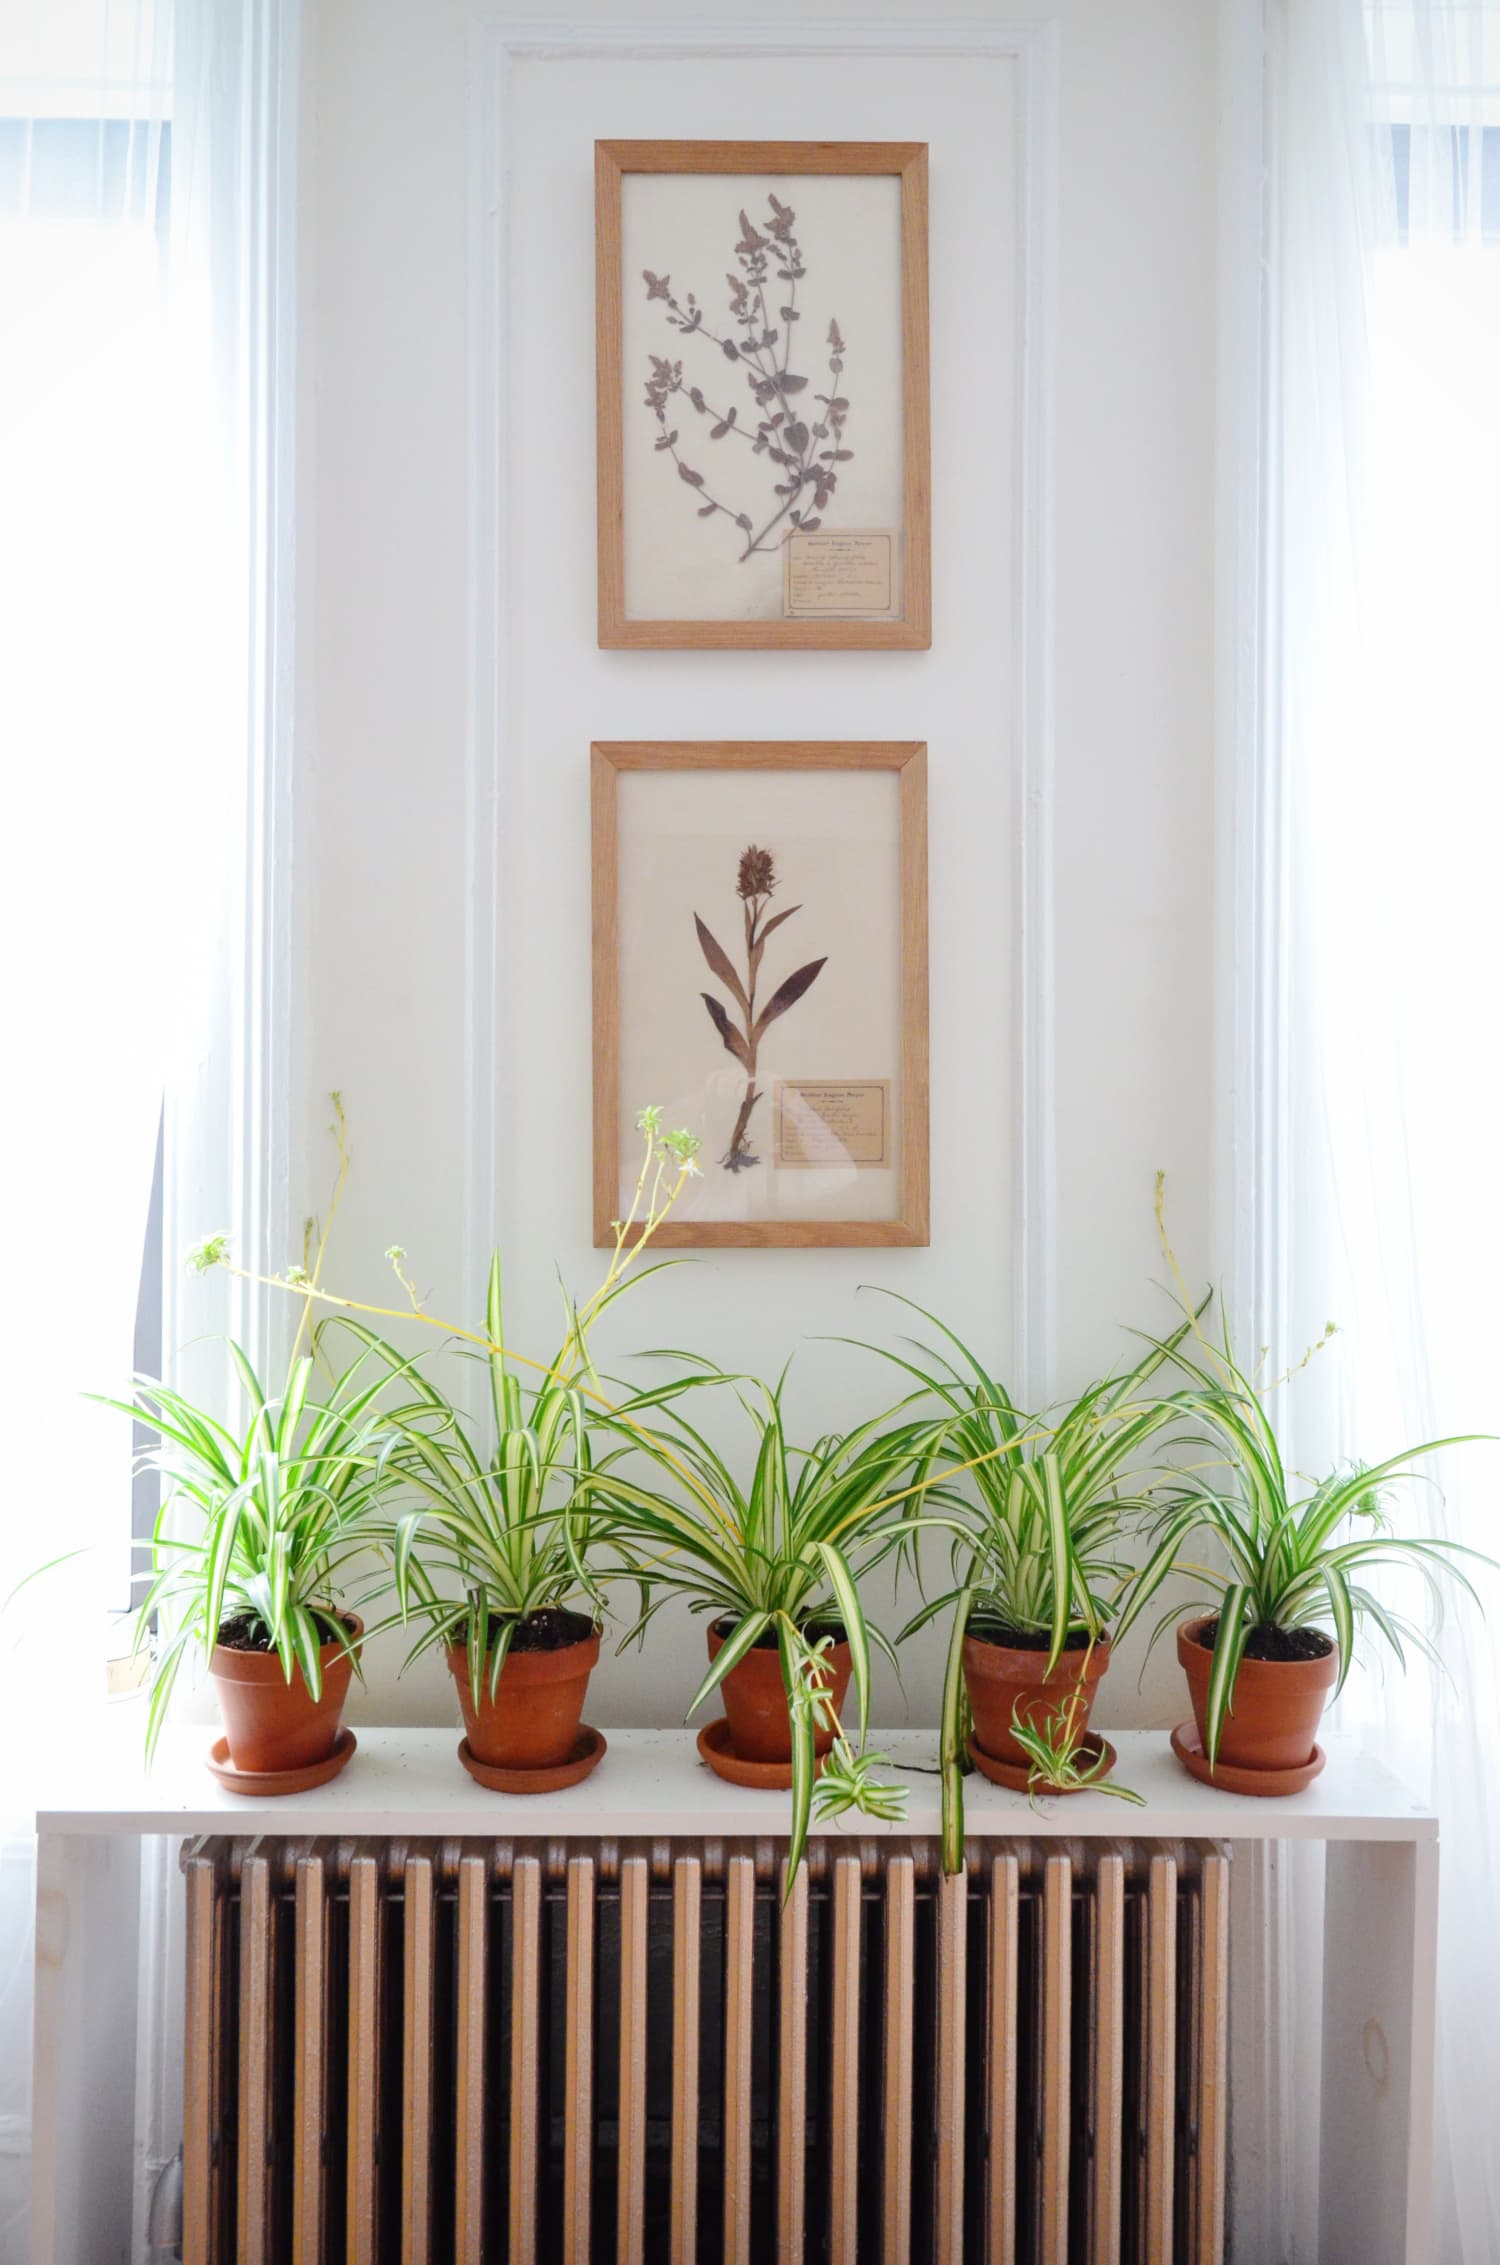 5 Hard-to-Kill Houseplants for Apartments with Low Light